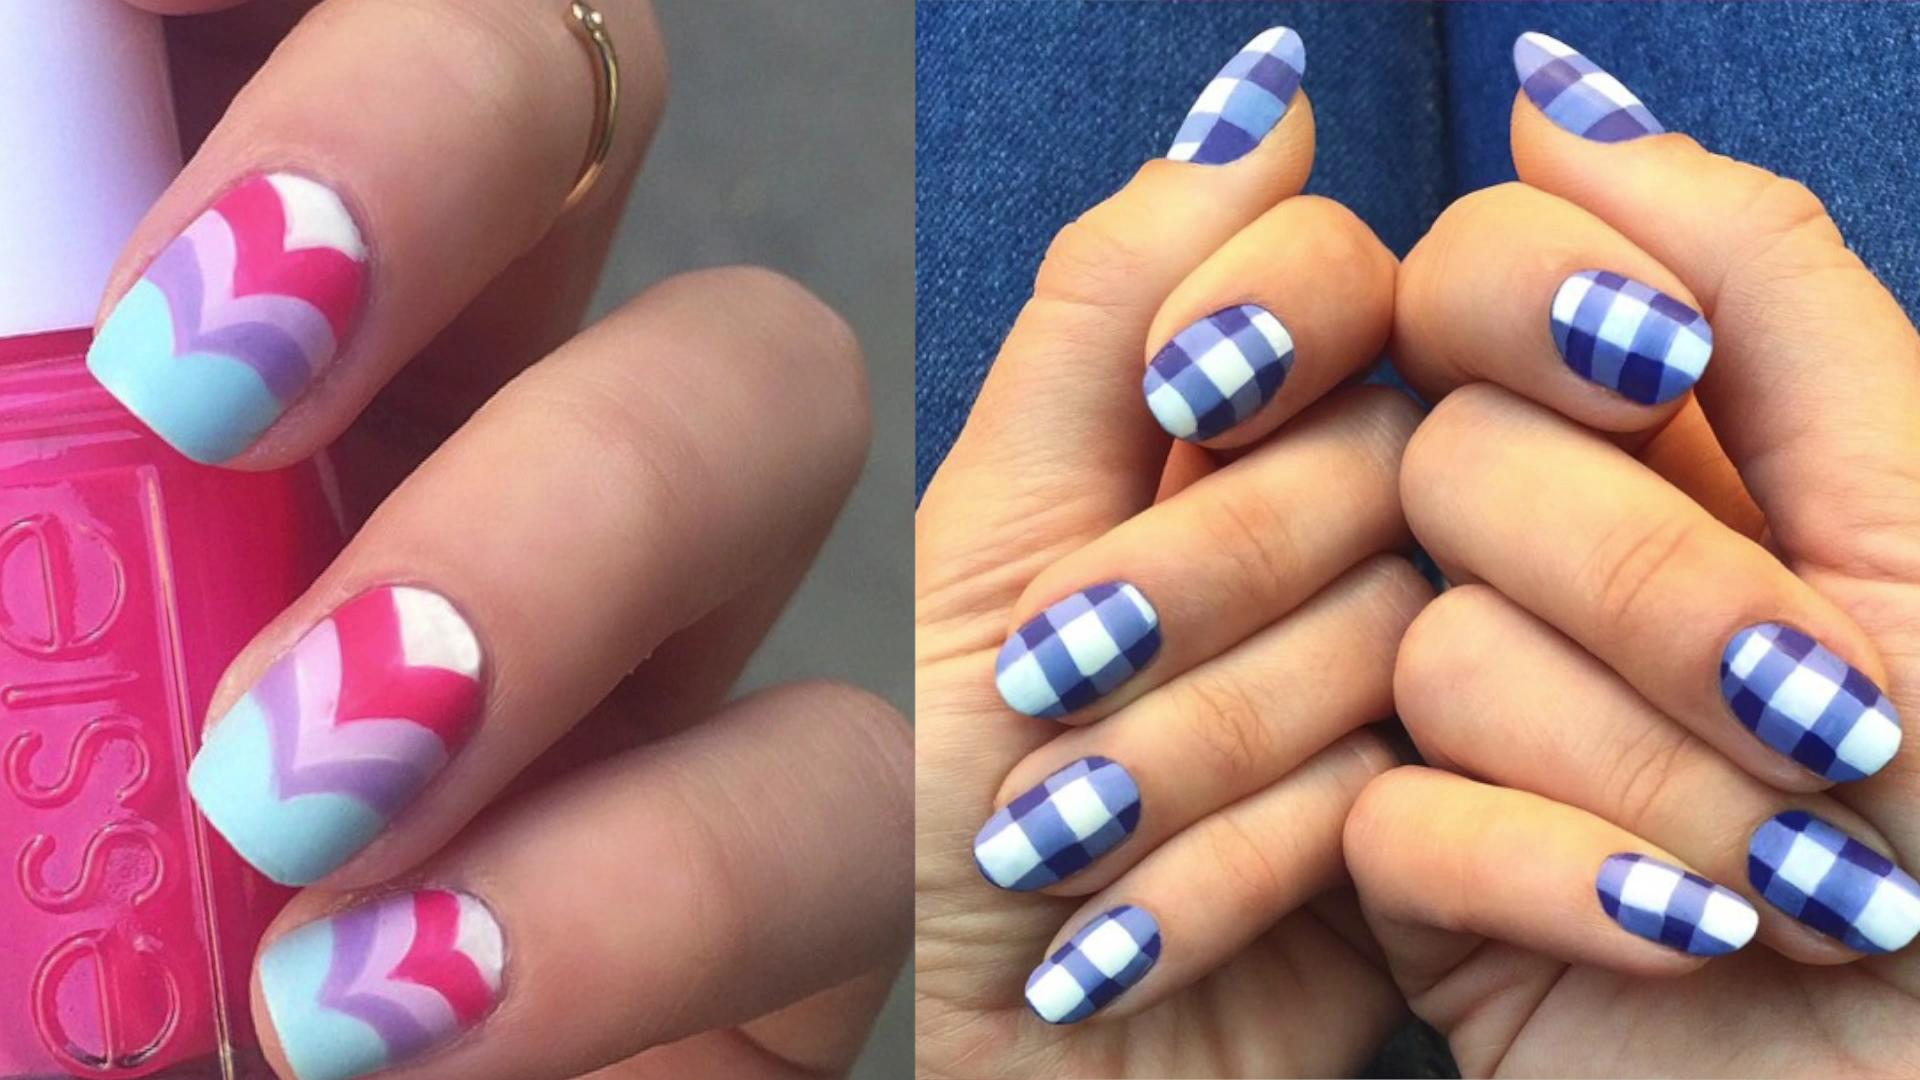 Hottest summer nail trends inspired by Instagram